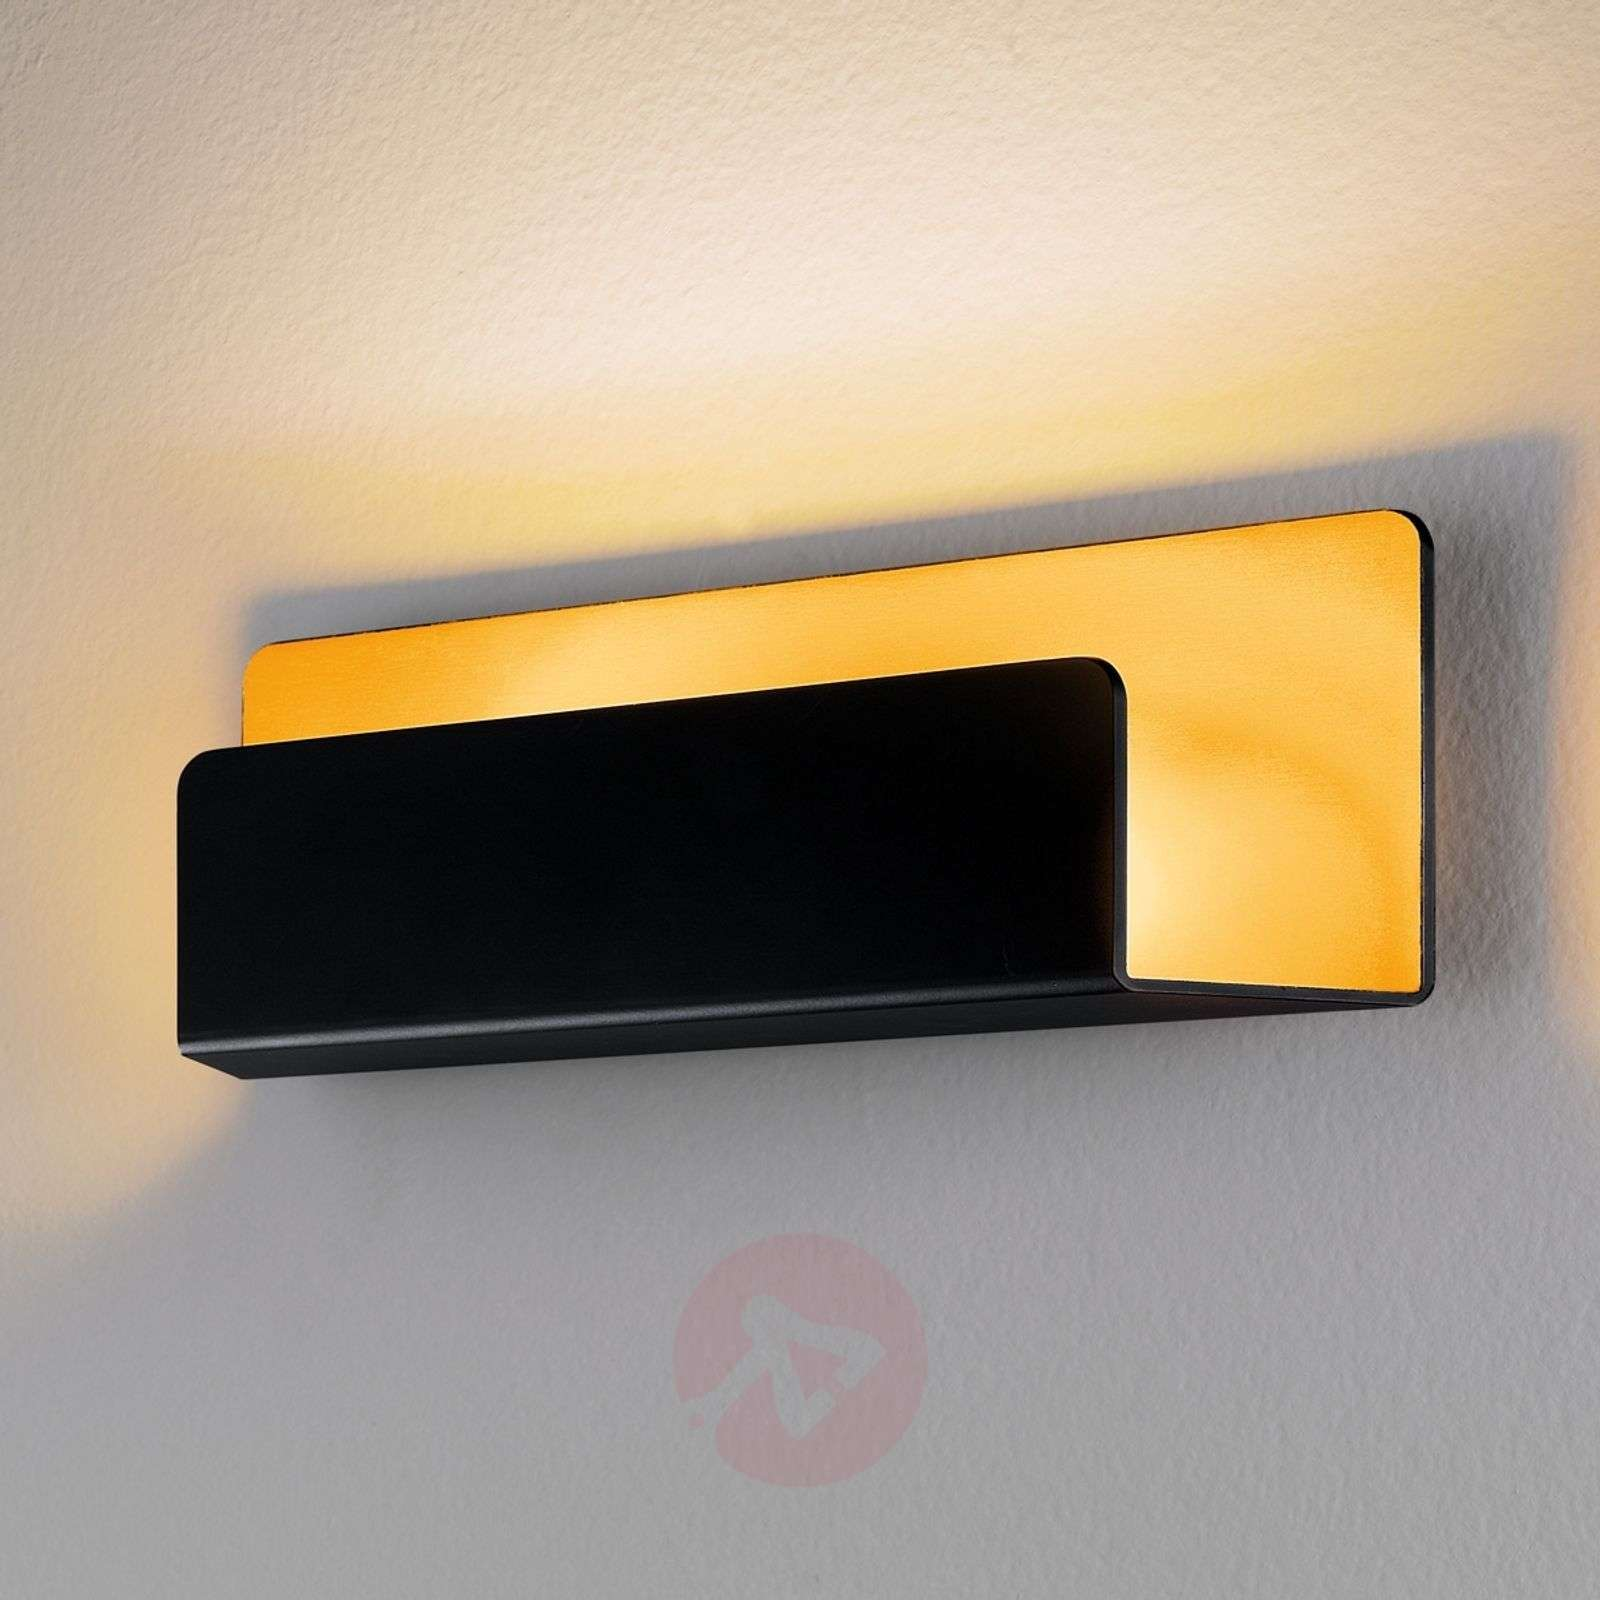 Elegant Rise wall light in gold and black, IP44-3023067-01